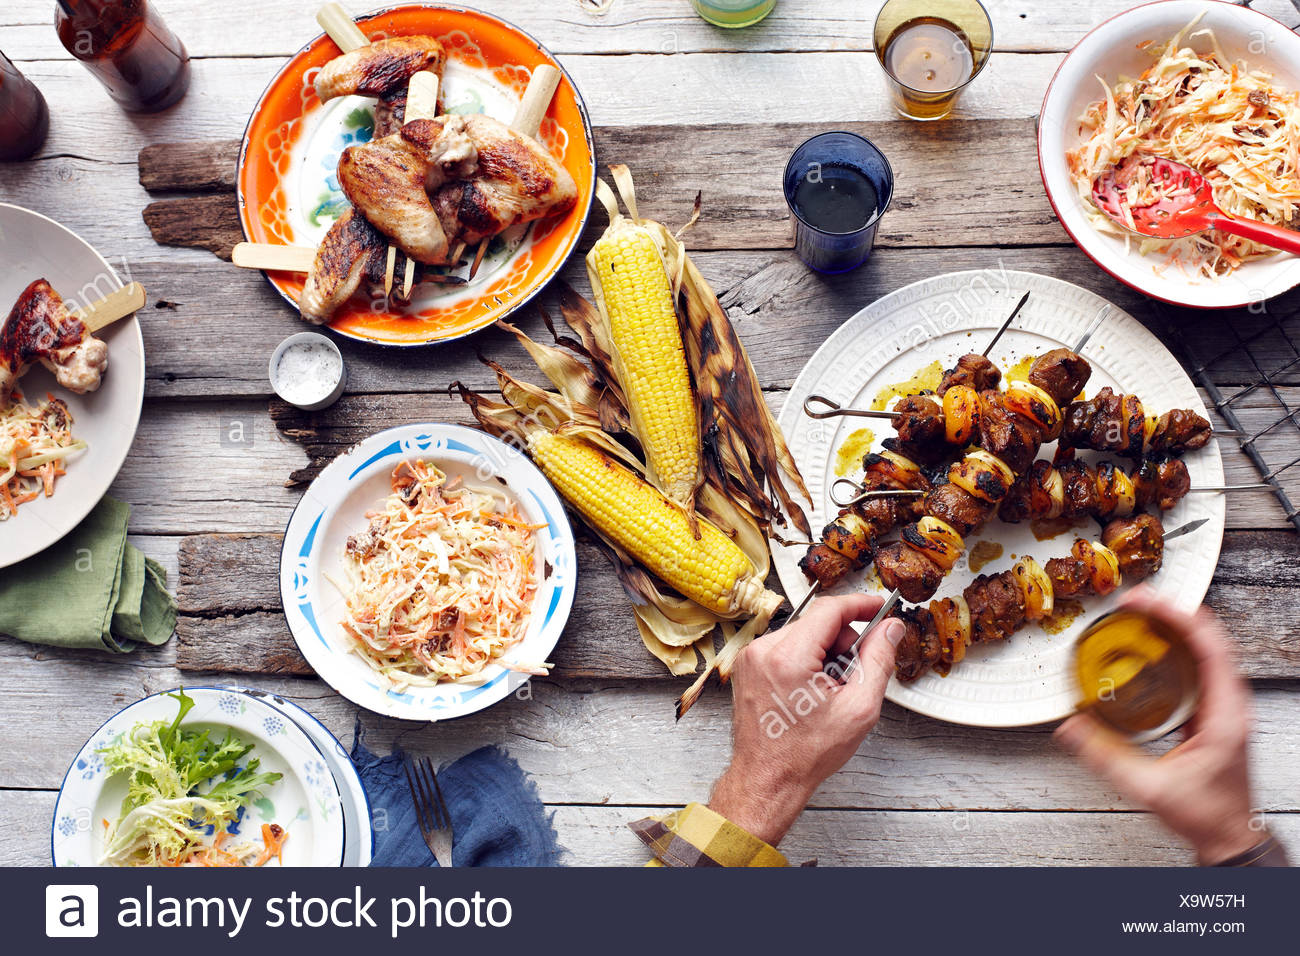 Mans hand picking up lamb and chicken skewer from table - Stock Image